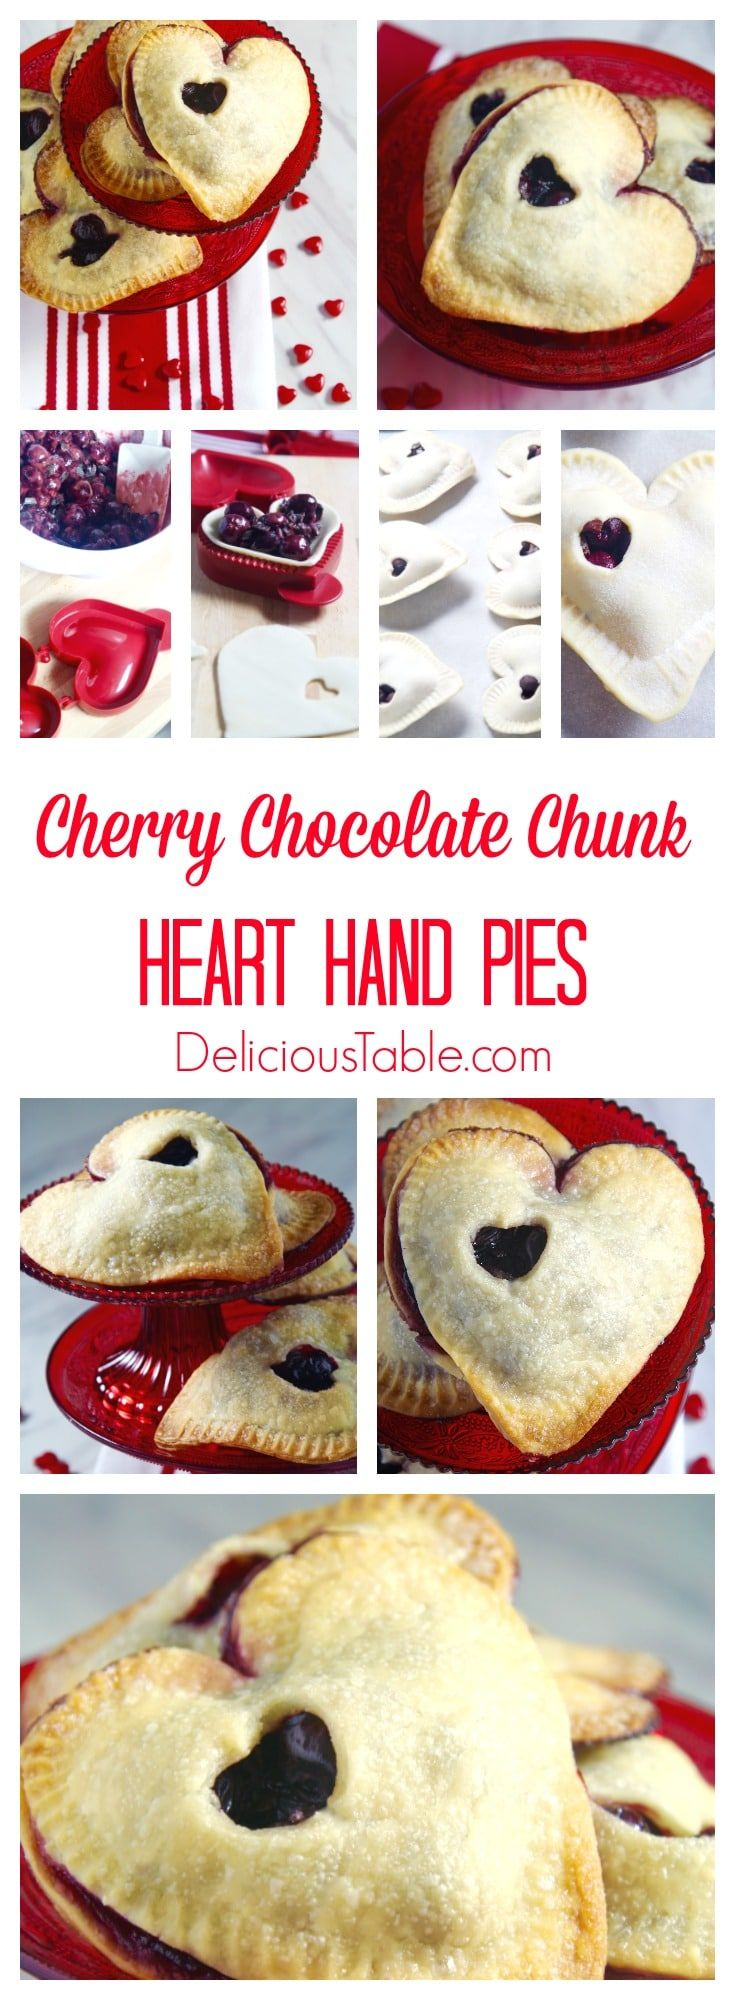 Sweet Cherry Chocolate Chunk Heart Hand Pies with a sugar crust. Hand pies are just that, no fork required! Make these fun treats for your sweetheart!